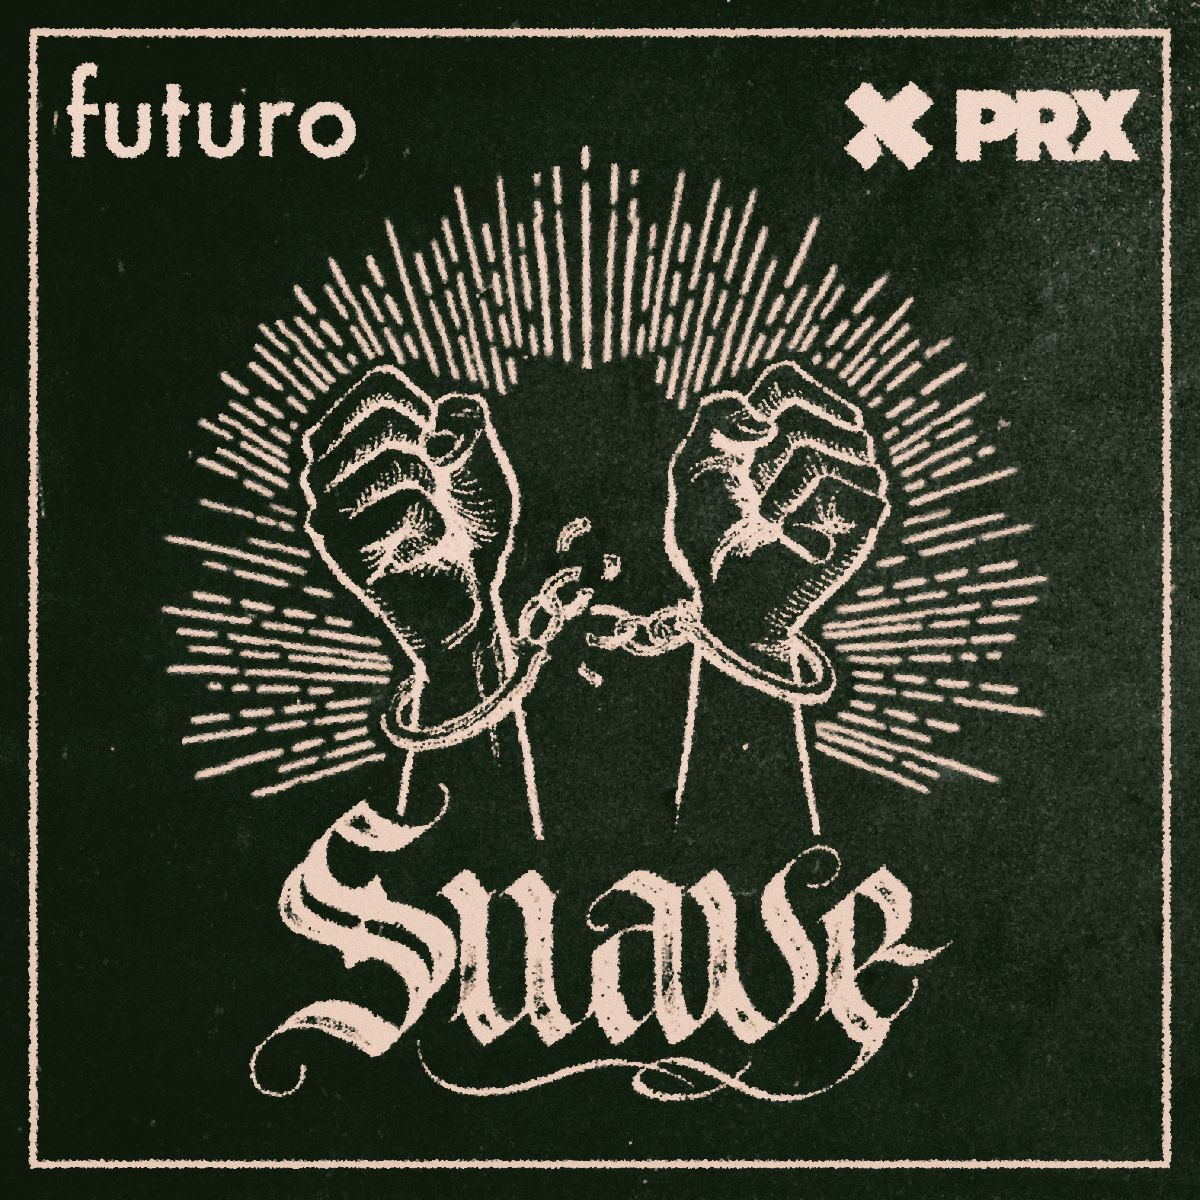 The podcast art for the show Suave, a black square with a beige border. The Futuro and PRX logos are in the top left and right corners, and a pair of fists in broken handcuffs are highlighted. The word Suave is in script below the fists.